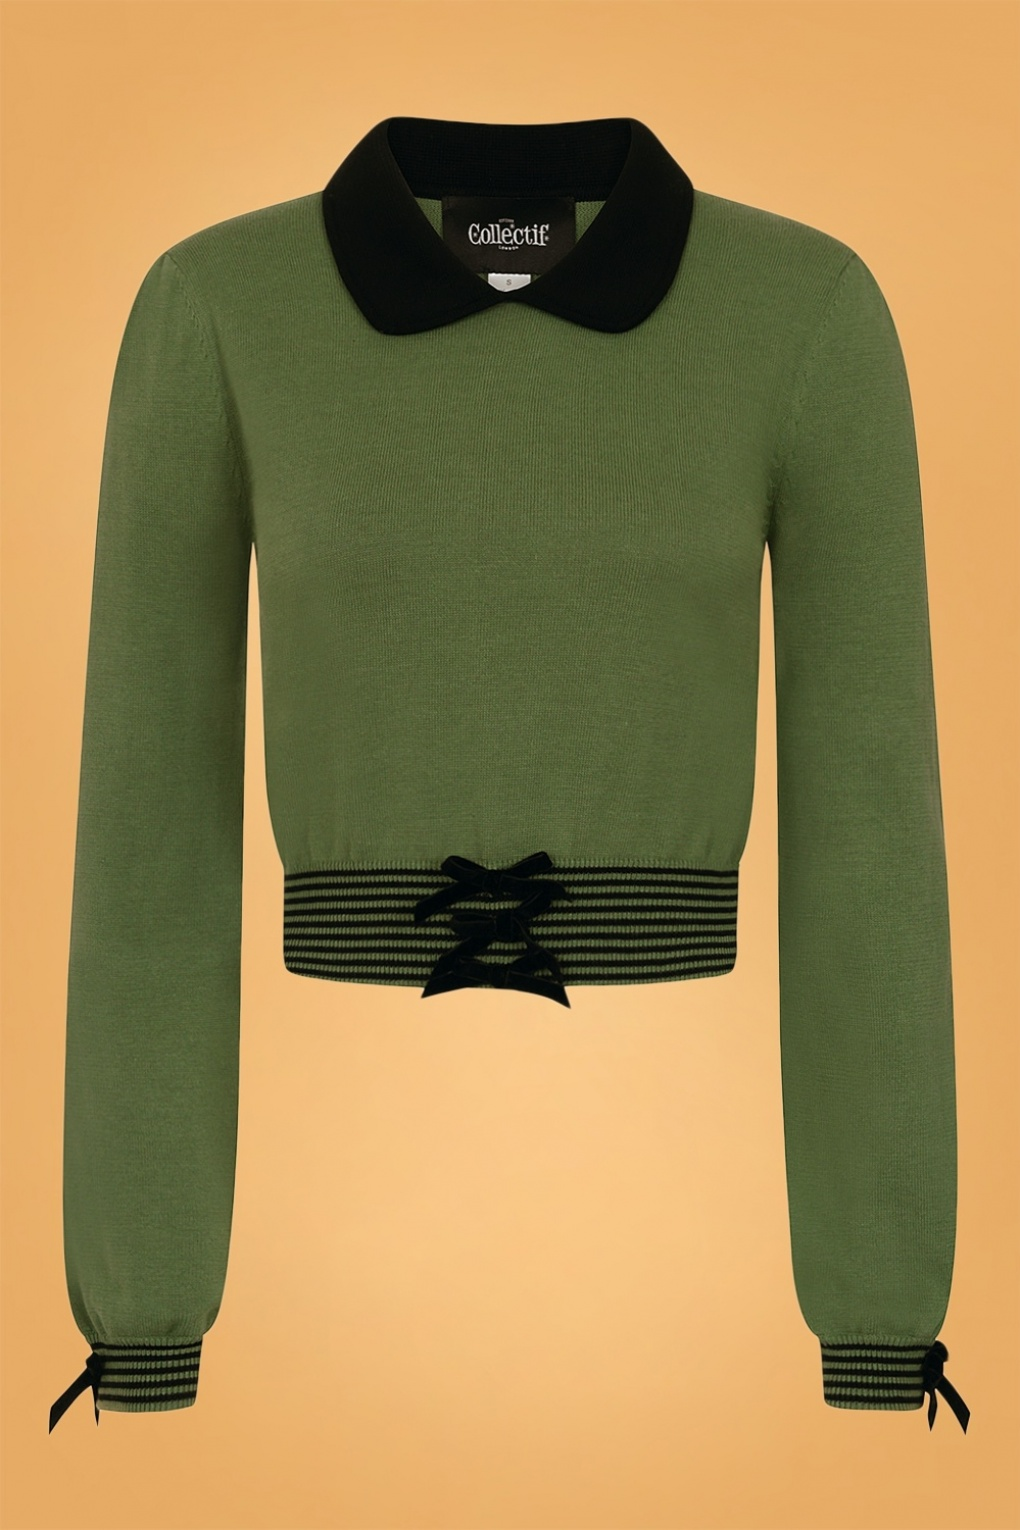 1950s Sweaters, 50s Cardigans, 50s Jumpers 50s Maeve Jumper in Thyme Green £51.26 AT vintagedancer.com